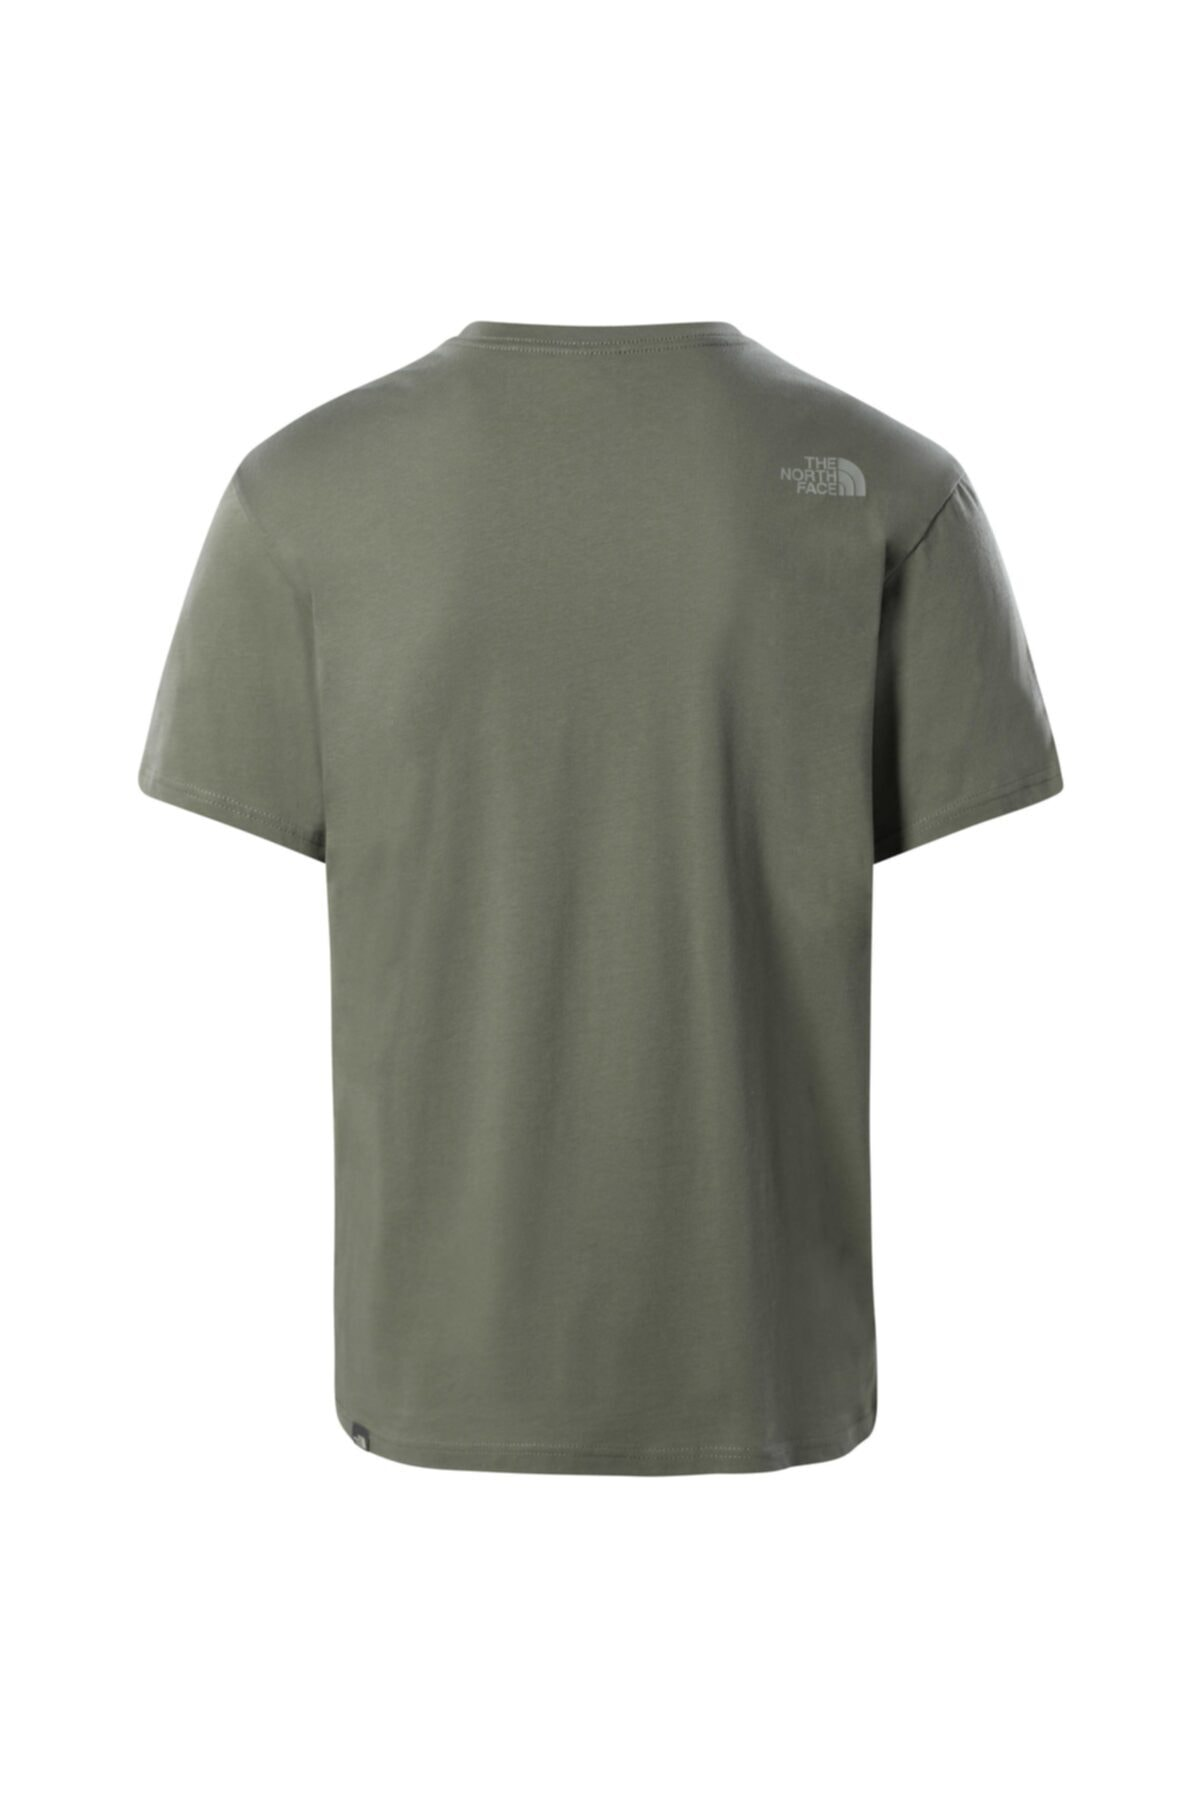 THE NORTH FACE Erkek Walls Are For Climbing T-shirt - T93s3sv38 2